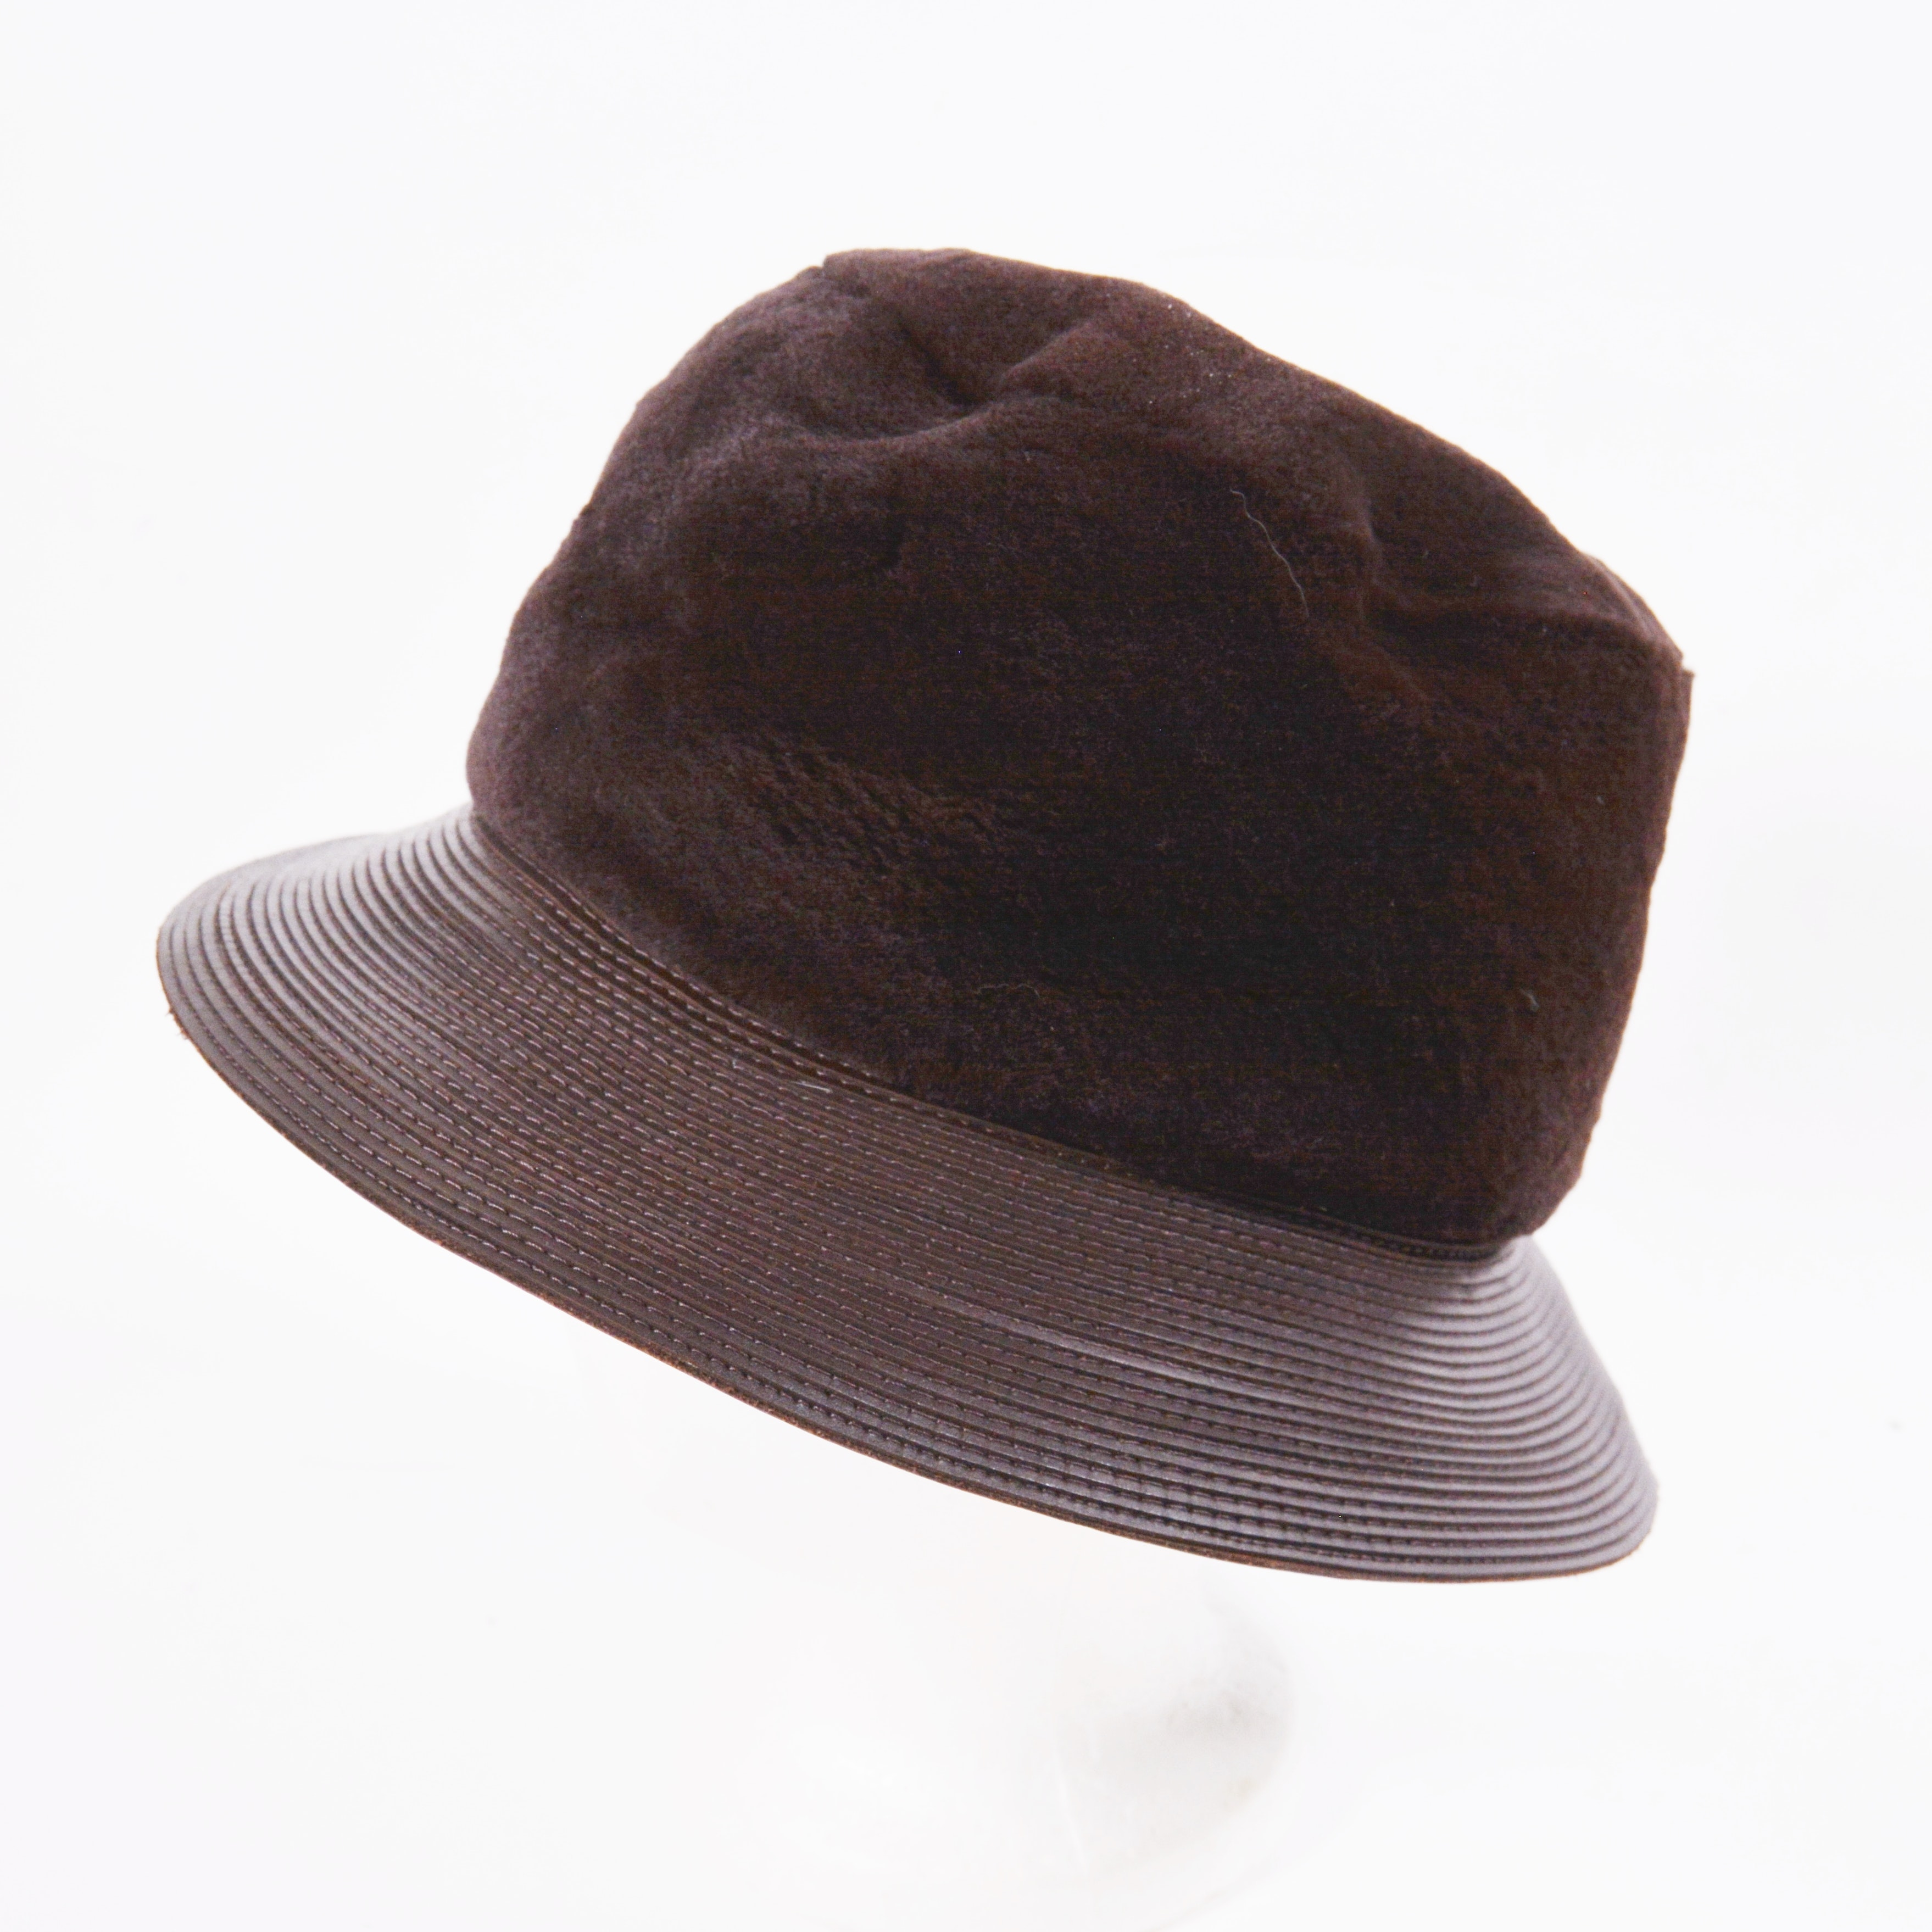 Patricia Underwood for J. Mendel Paris Sheared Mahogany Mink Fur and Leather Hat